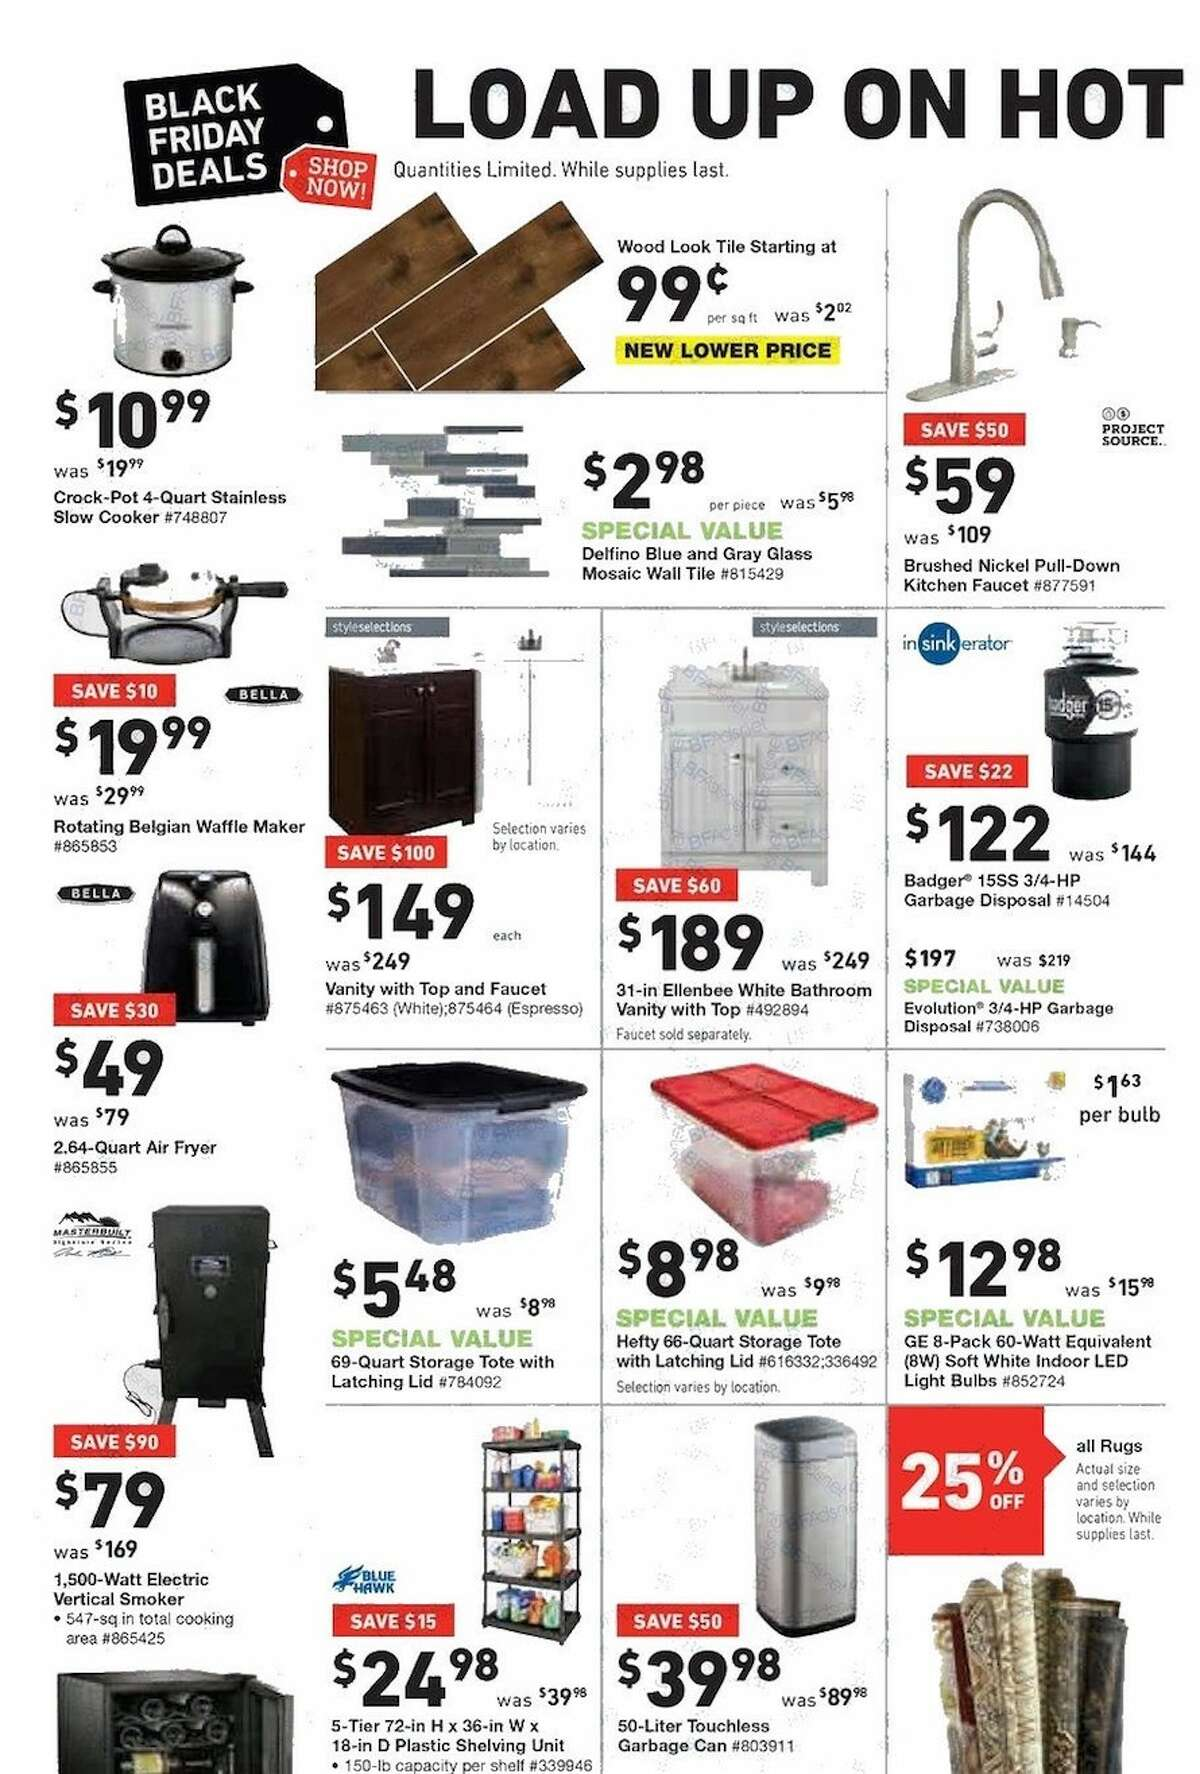 Lowe's released their Black Friday ad and holiday hours. Their stores will be open at 6 a.m. on Friday, Nov. 24, 2017 and deals last until Nov. 29, unless otherwise noted.